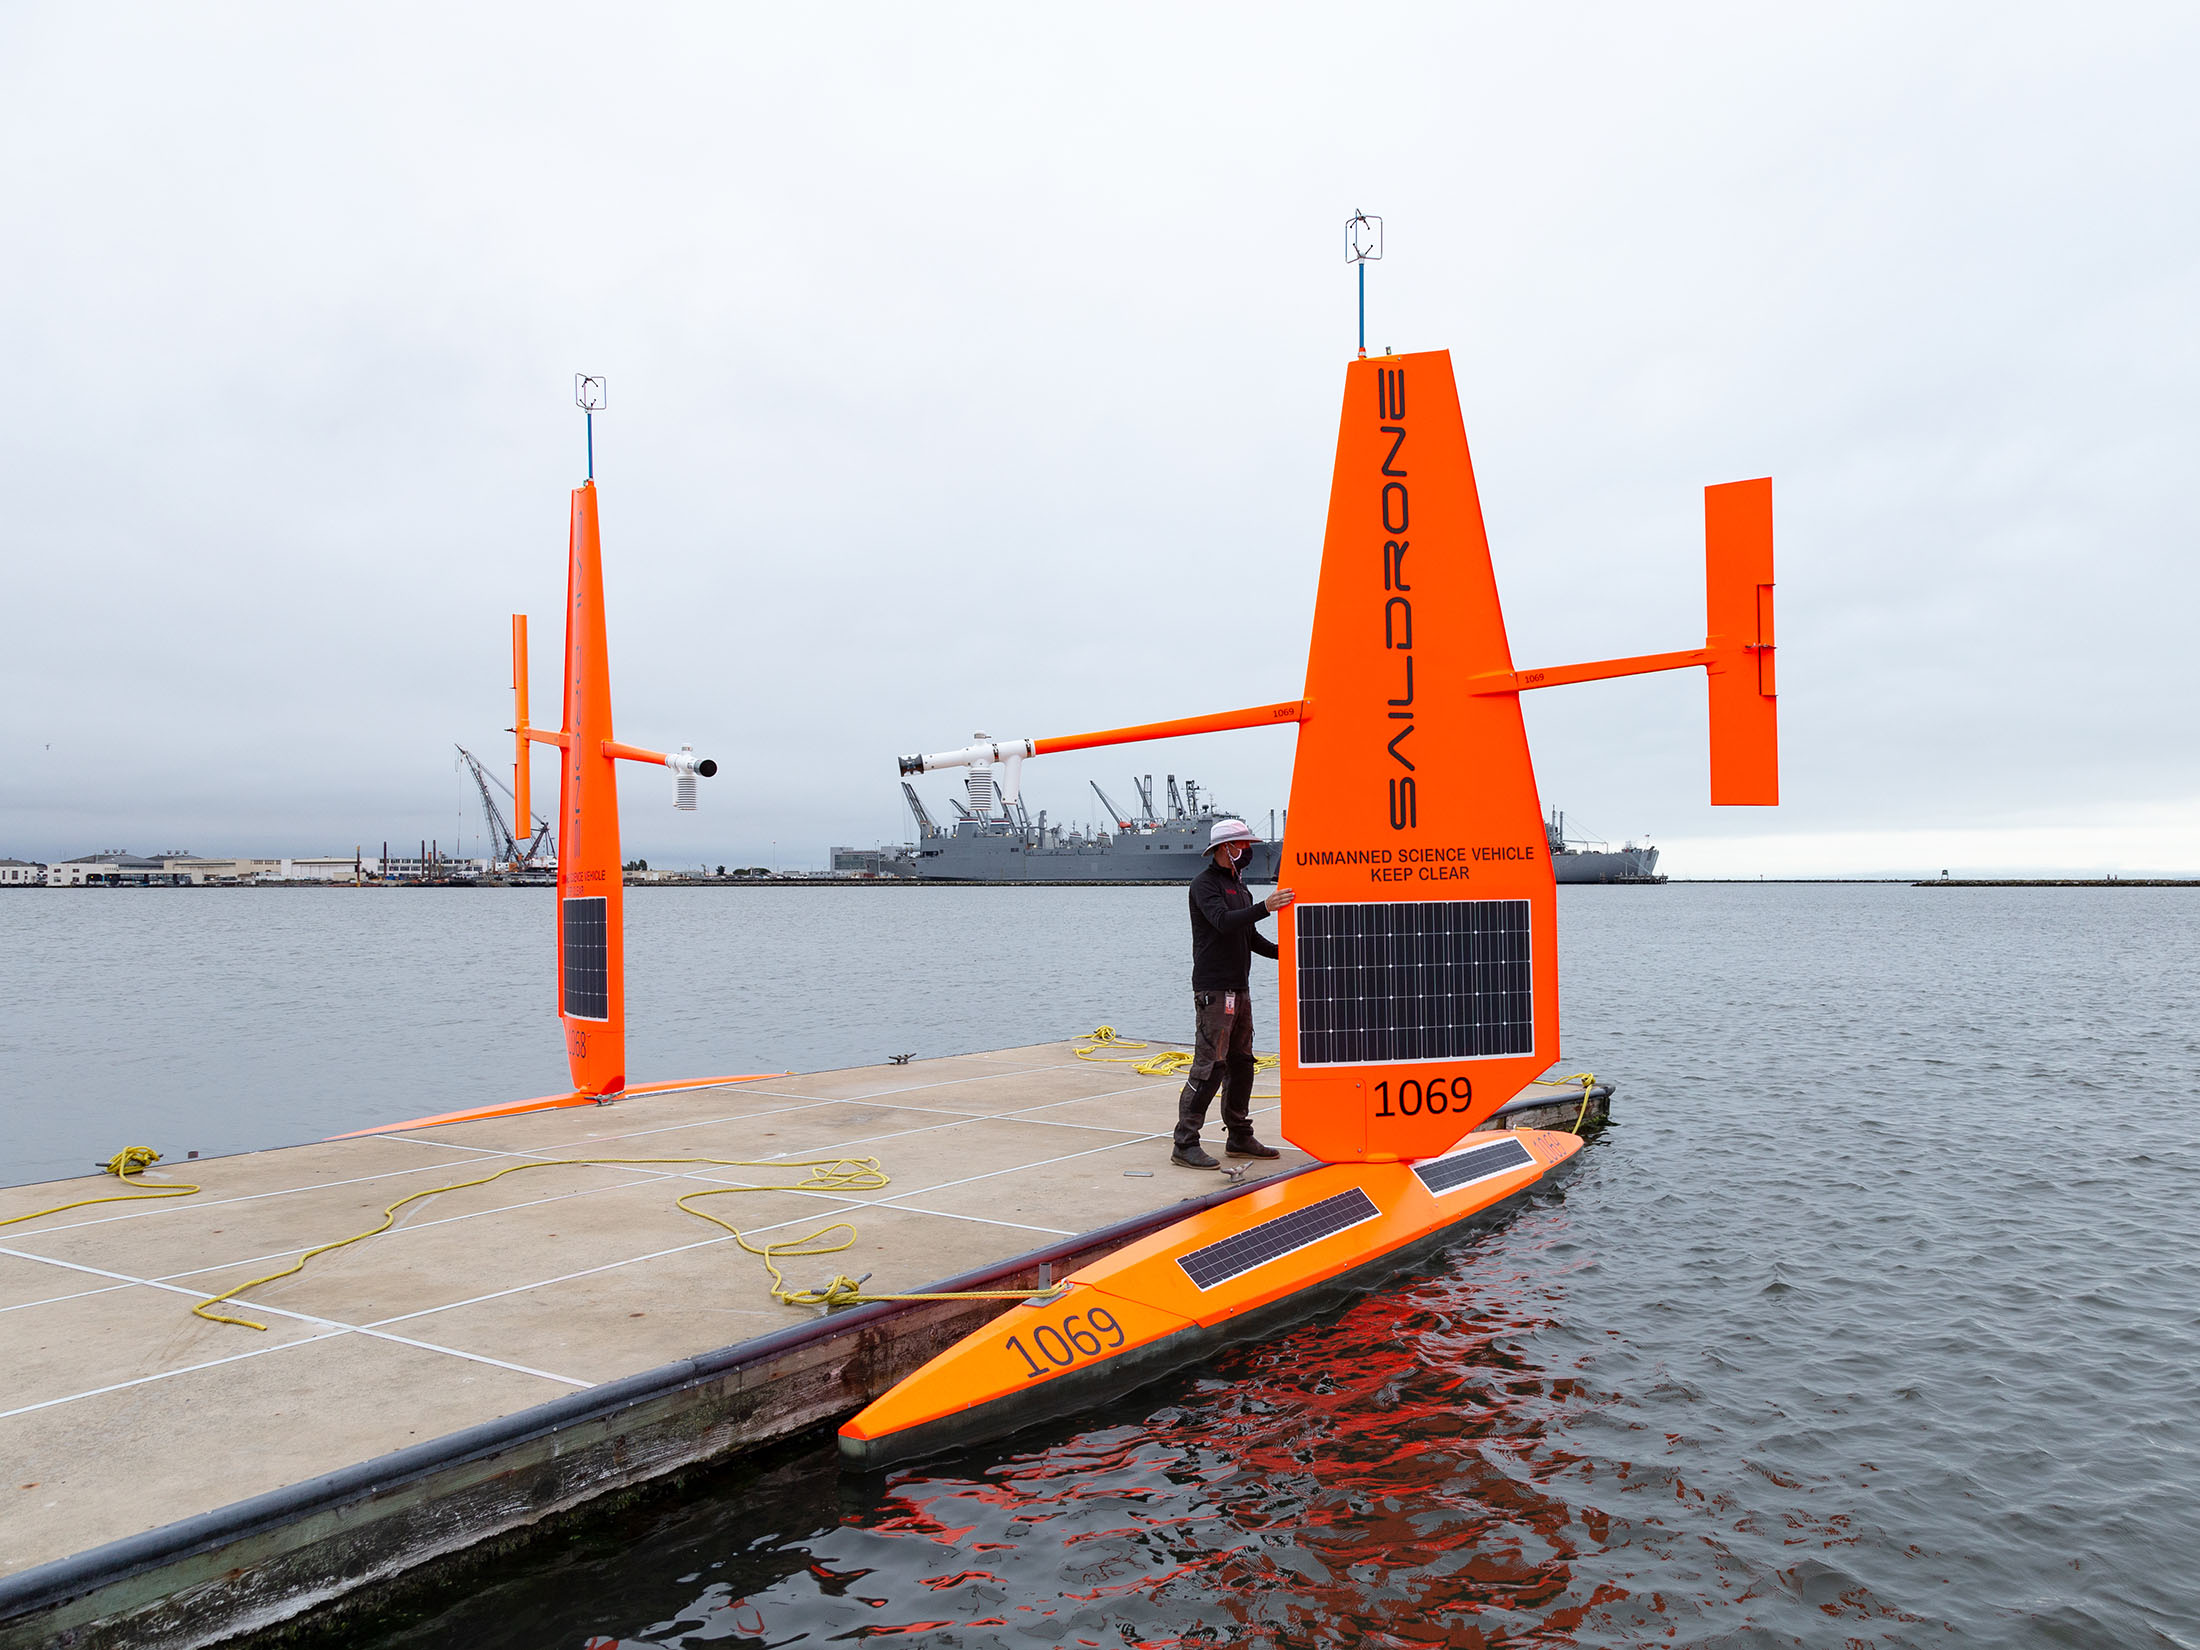 Saildrone at dock with worker wearing mask for COVID-19